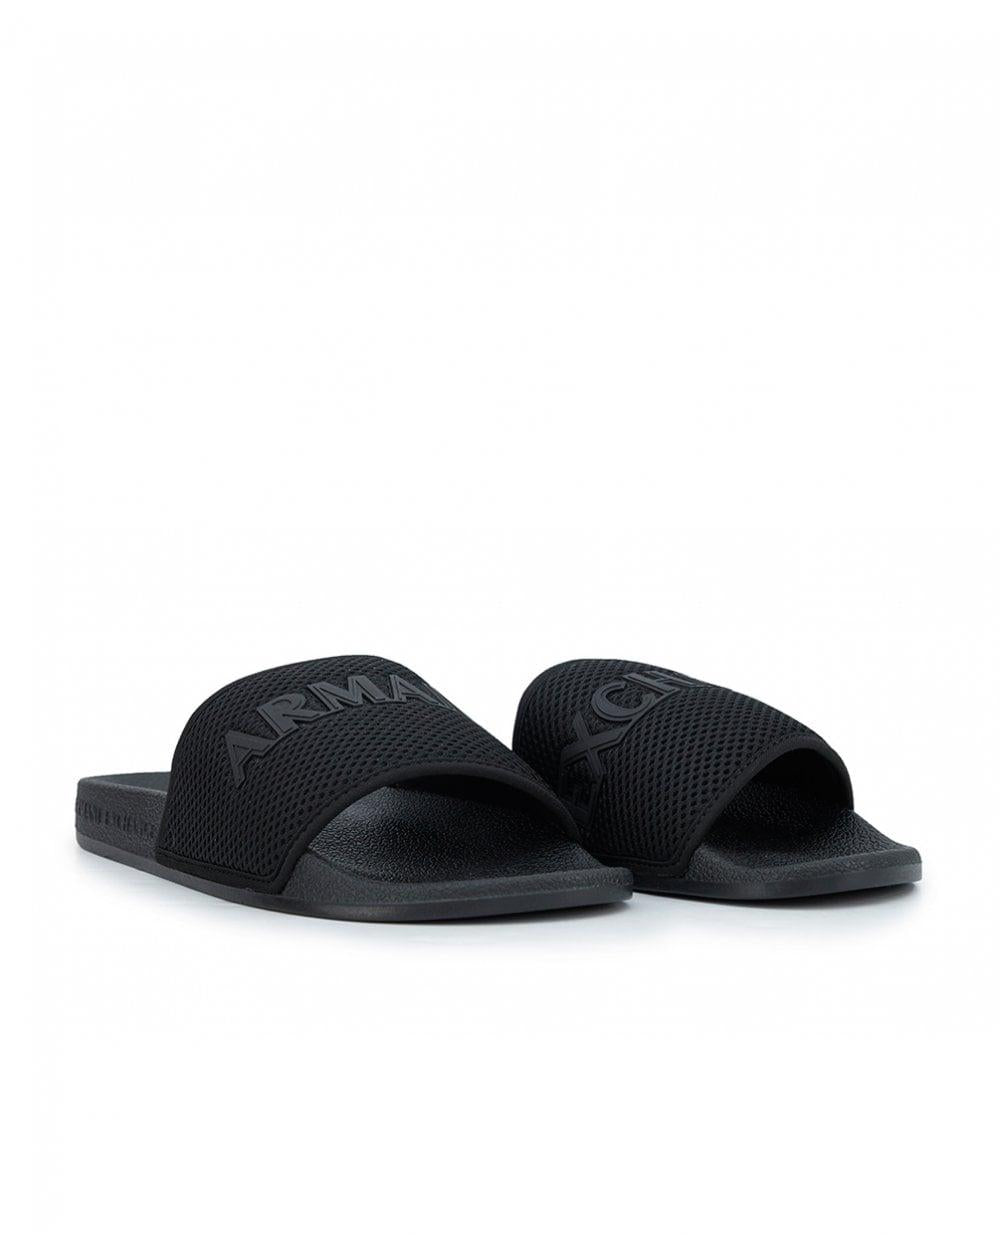 ARMANI EXCHANGE MEN'S SLIPPERS XUP001-XV087-00002 Black color